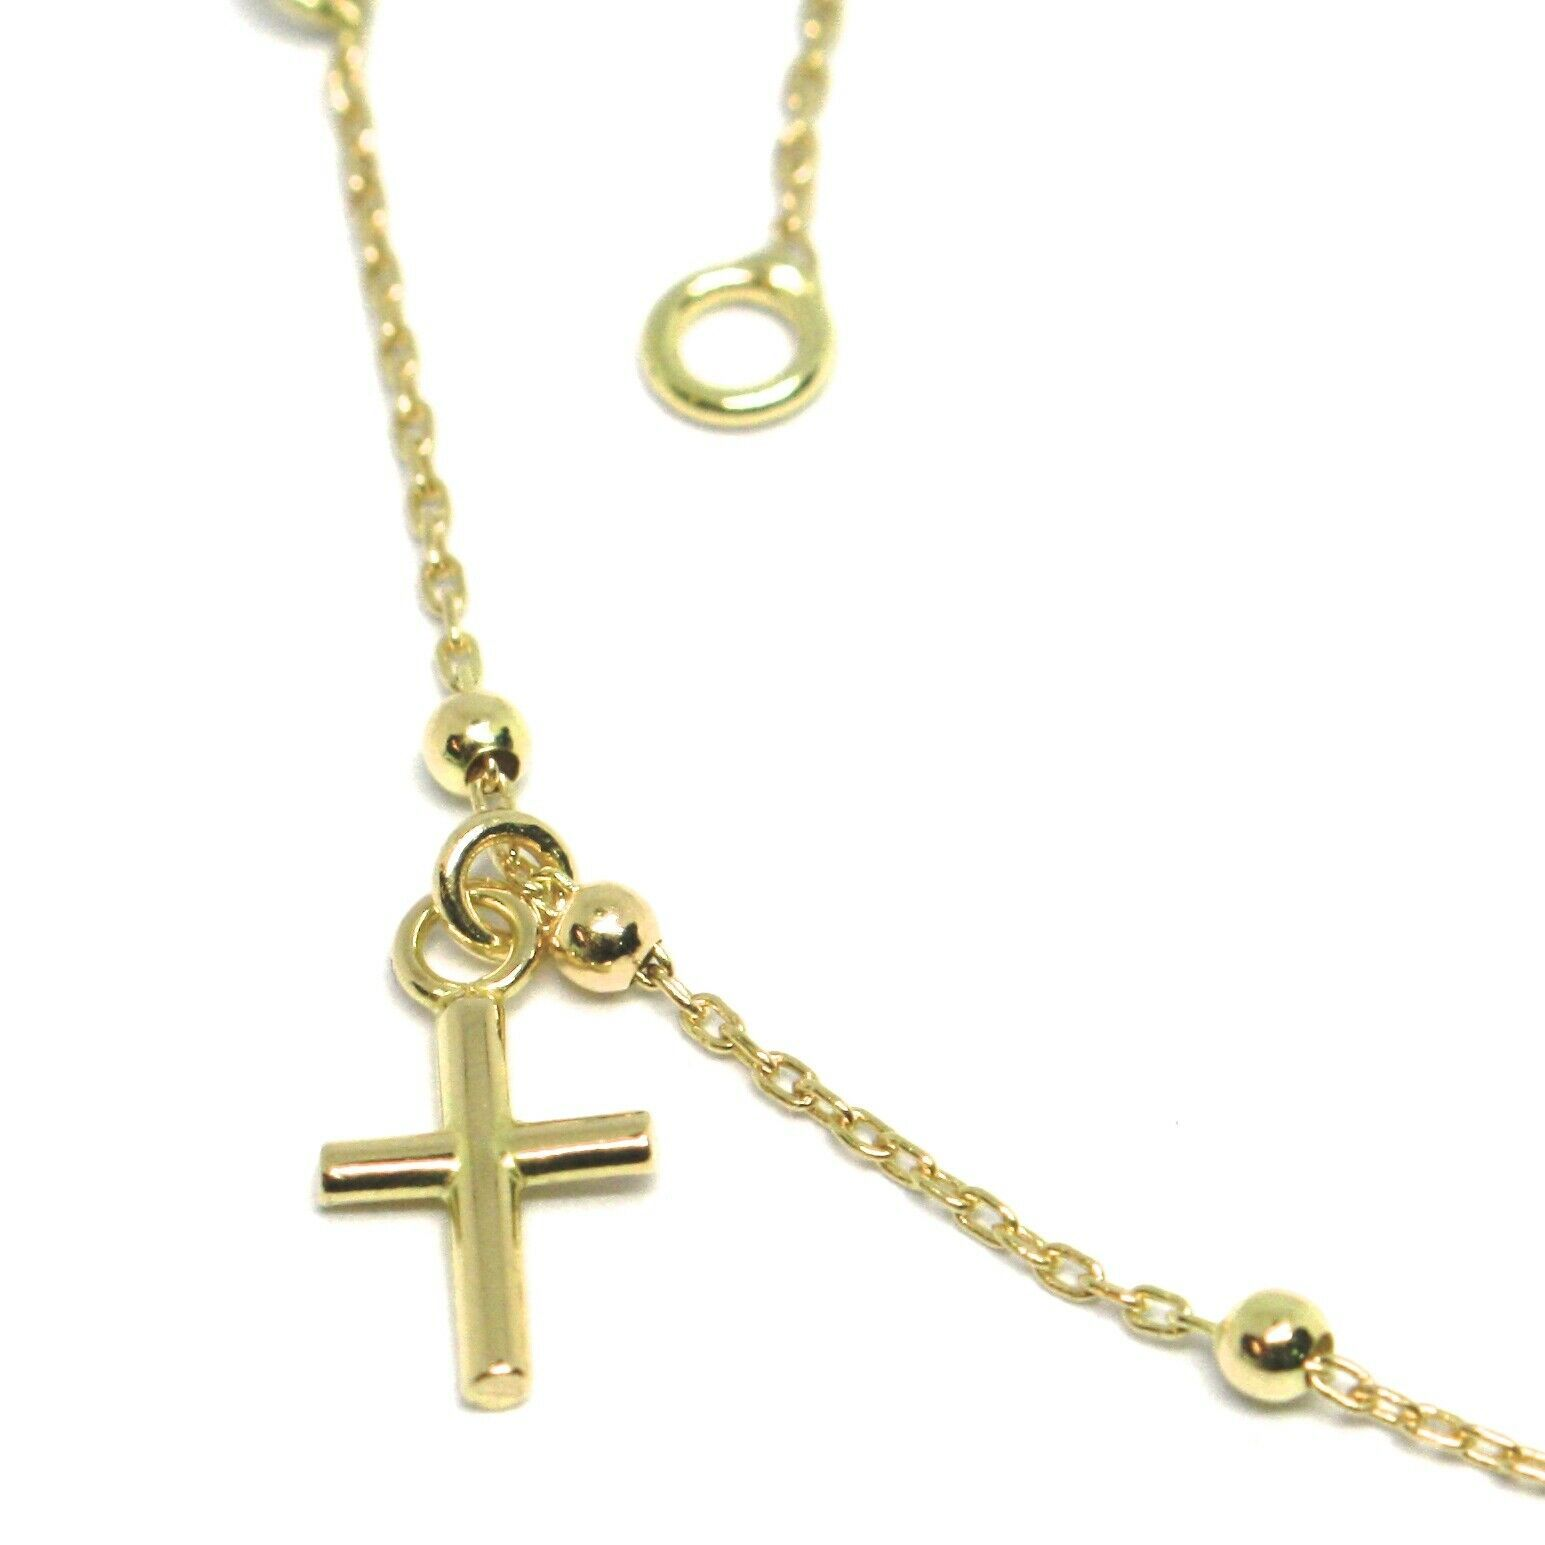 Mini Gold Bracelet Yellow or White or Pink 750 18k, Rosary with Cross, 18 cm